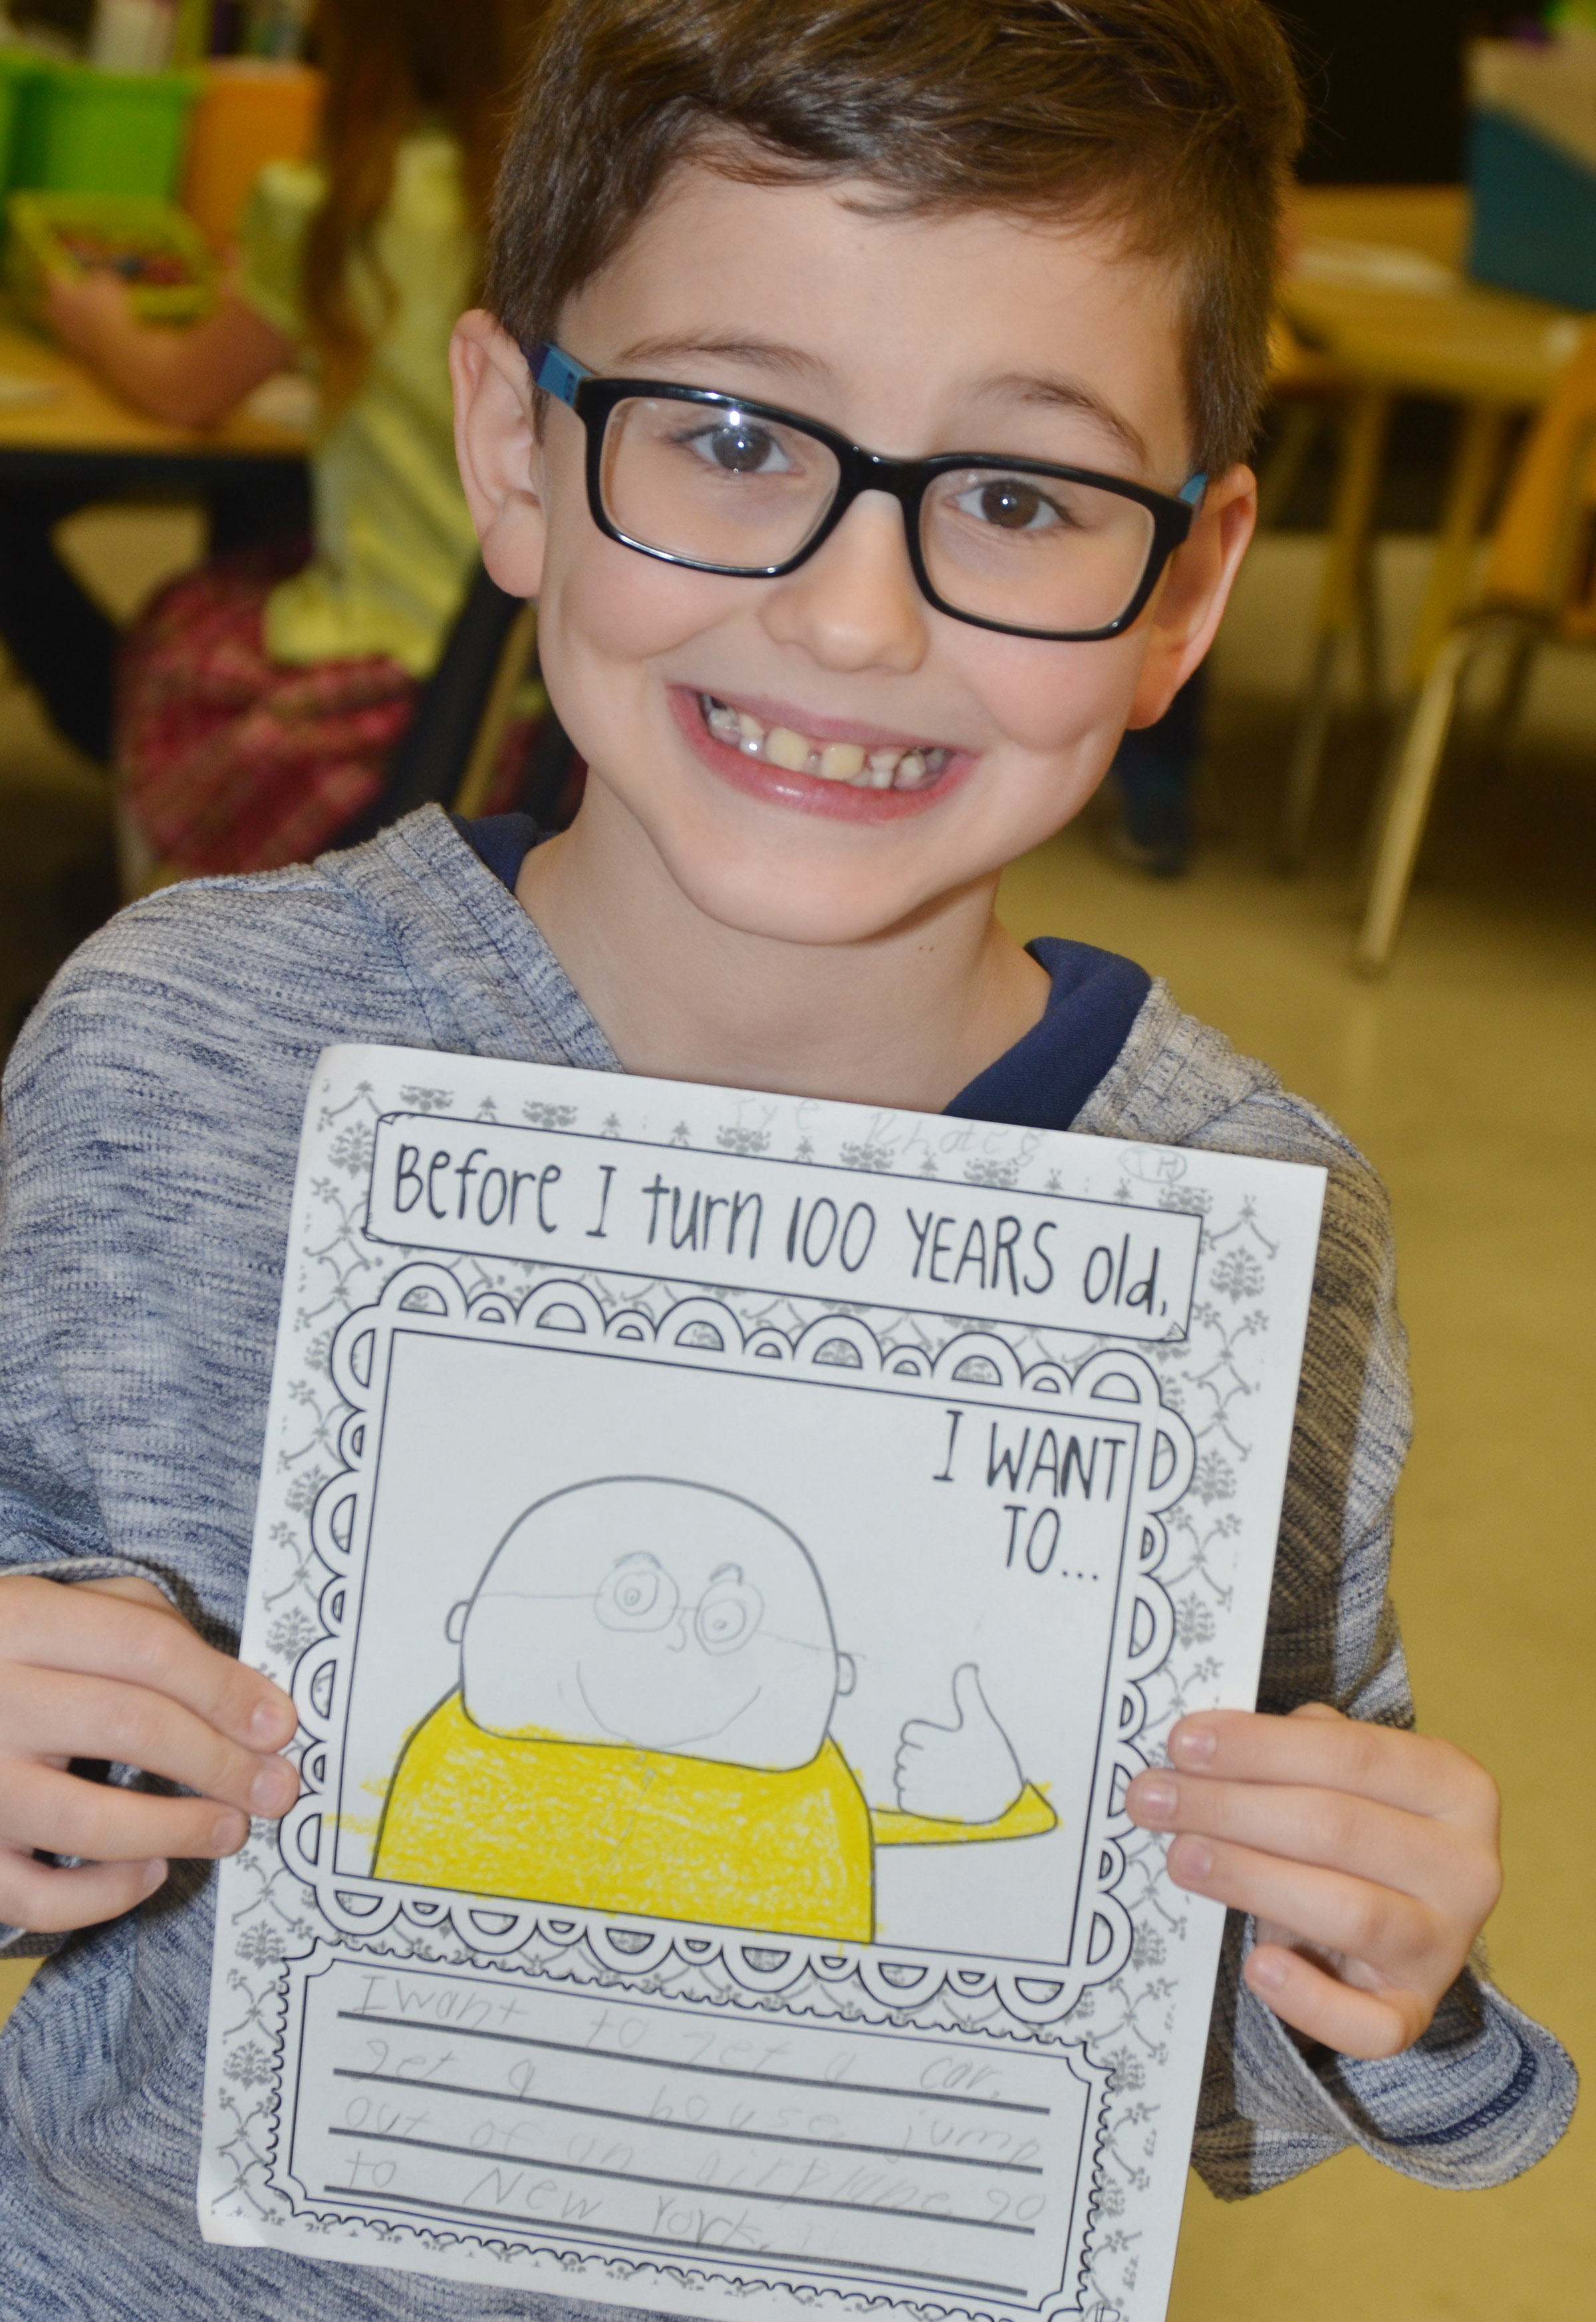 CES second-grader Tye Rhodes writes about what he hopes to do before turning 100. He hopes to buy a car and a house, jump out of an airplane and travel to New York.